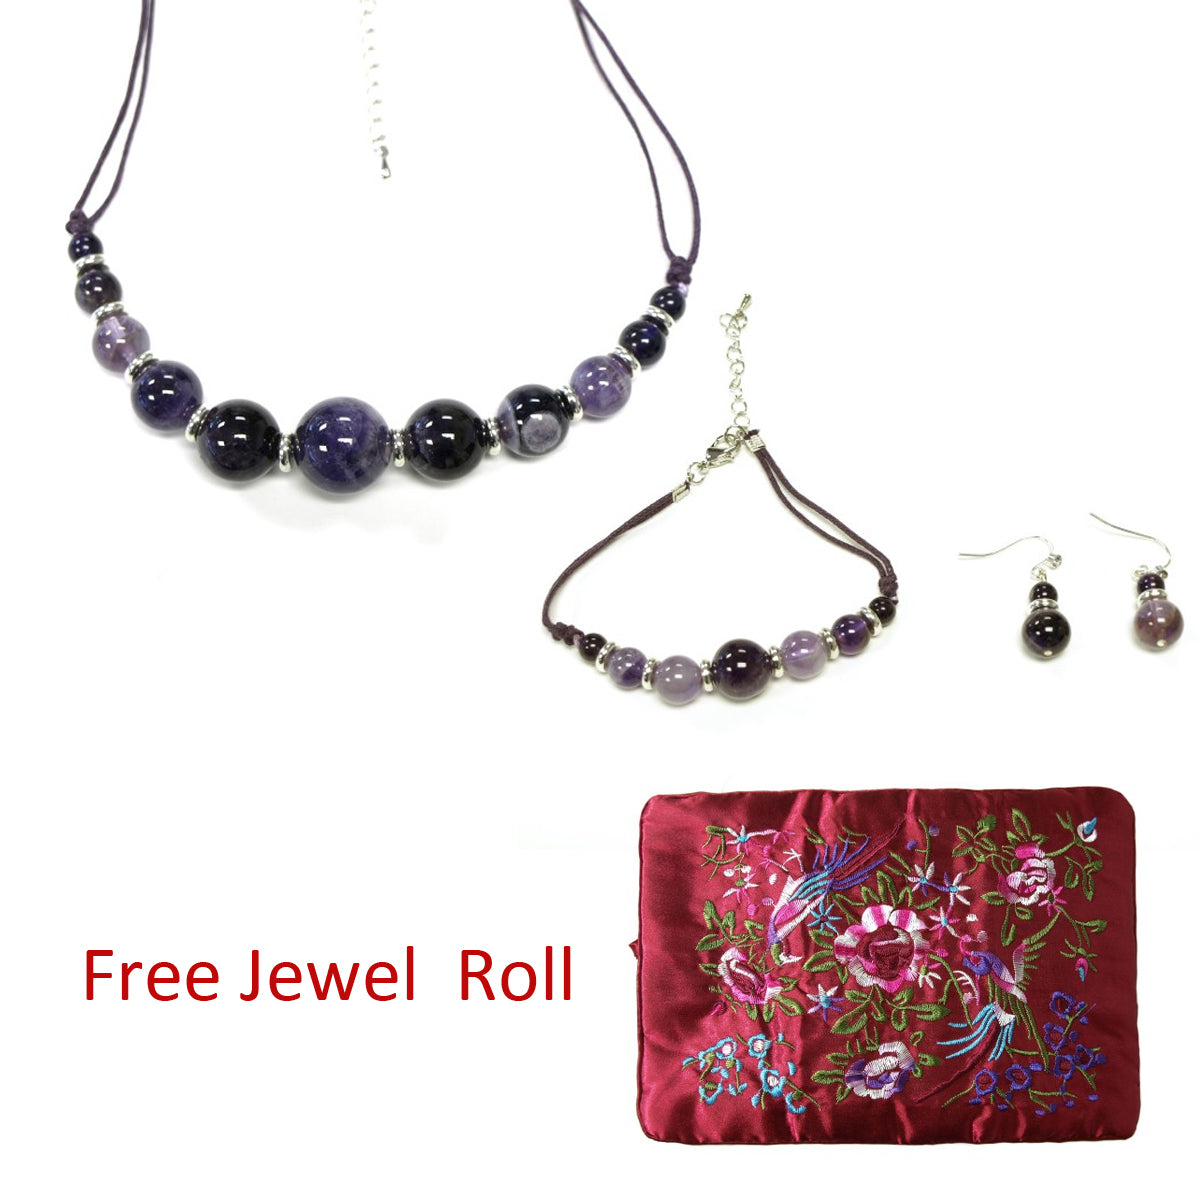 Round Purple Quartz Beads Necklace, Bracelet, and Earrings Jewelry Set + Large Burgundy Silk Embroidered Jewelry Roll